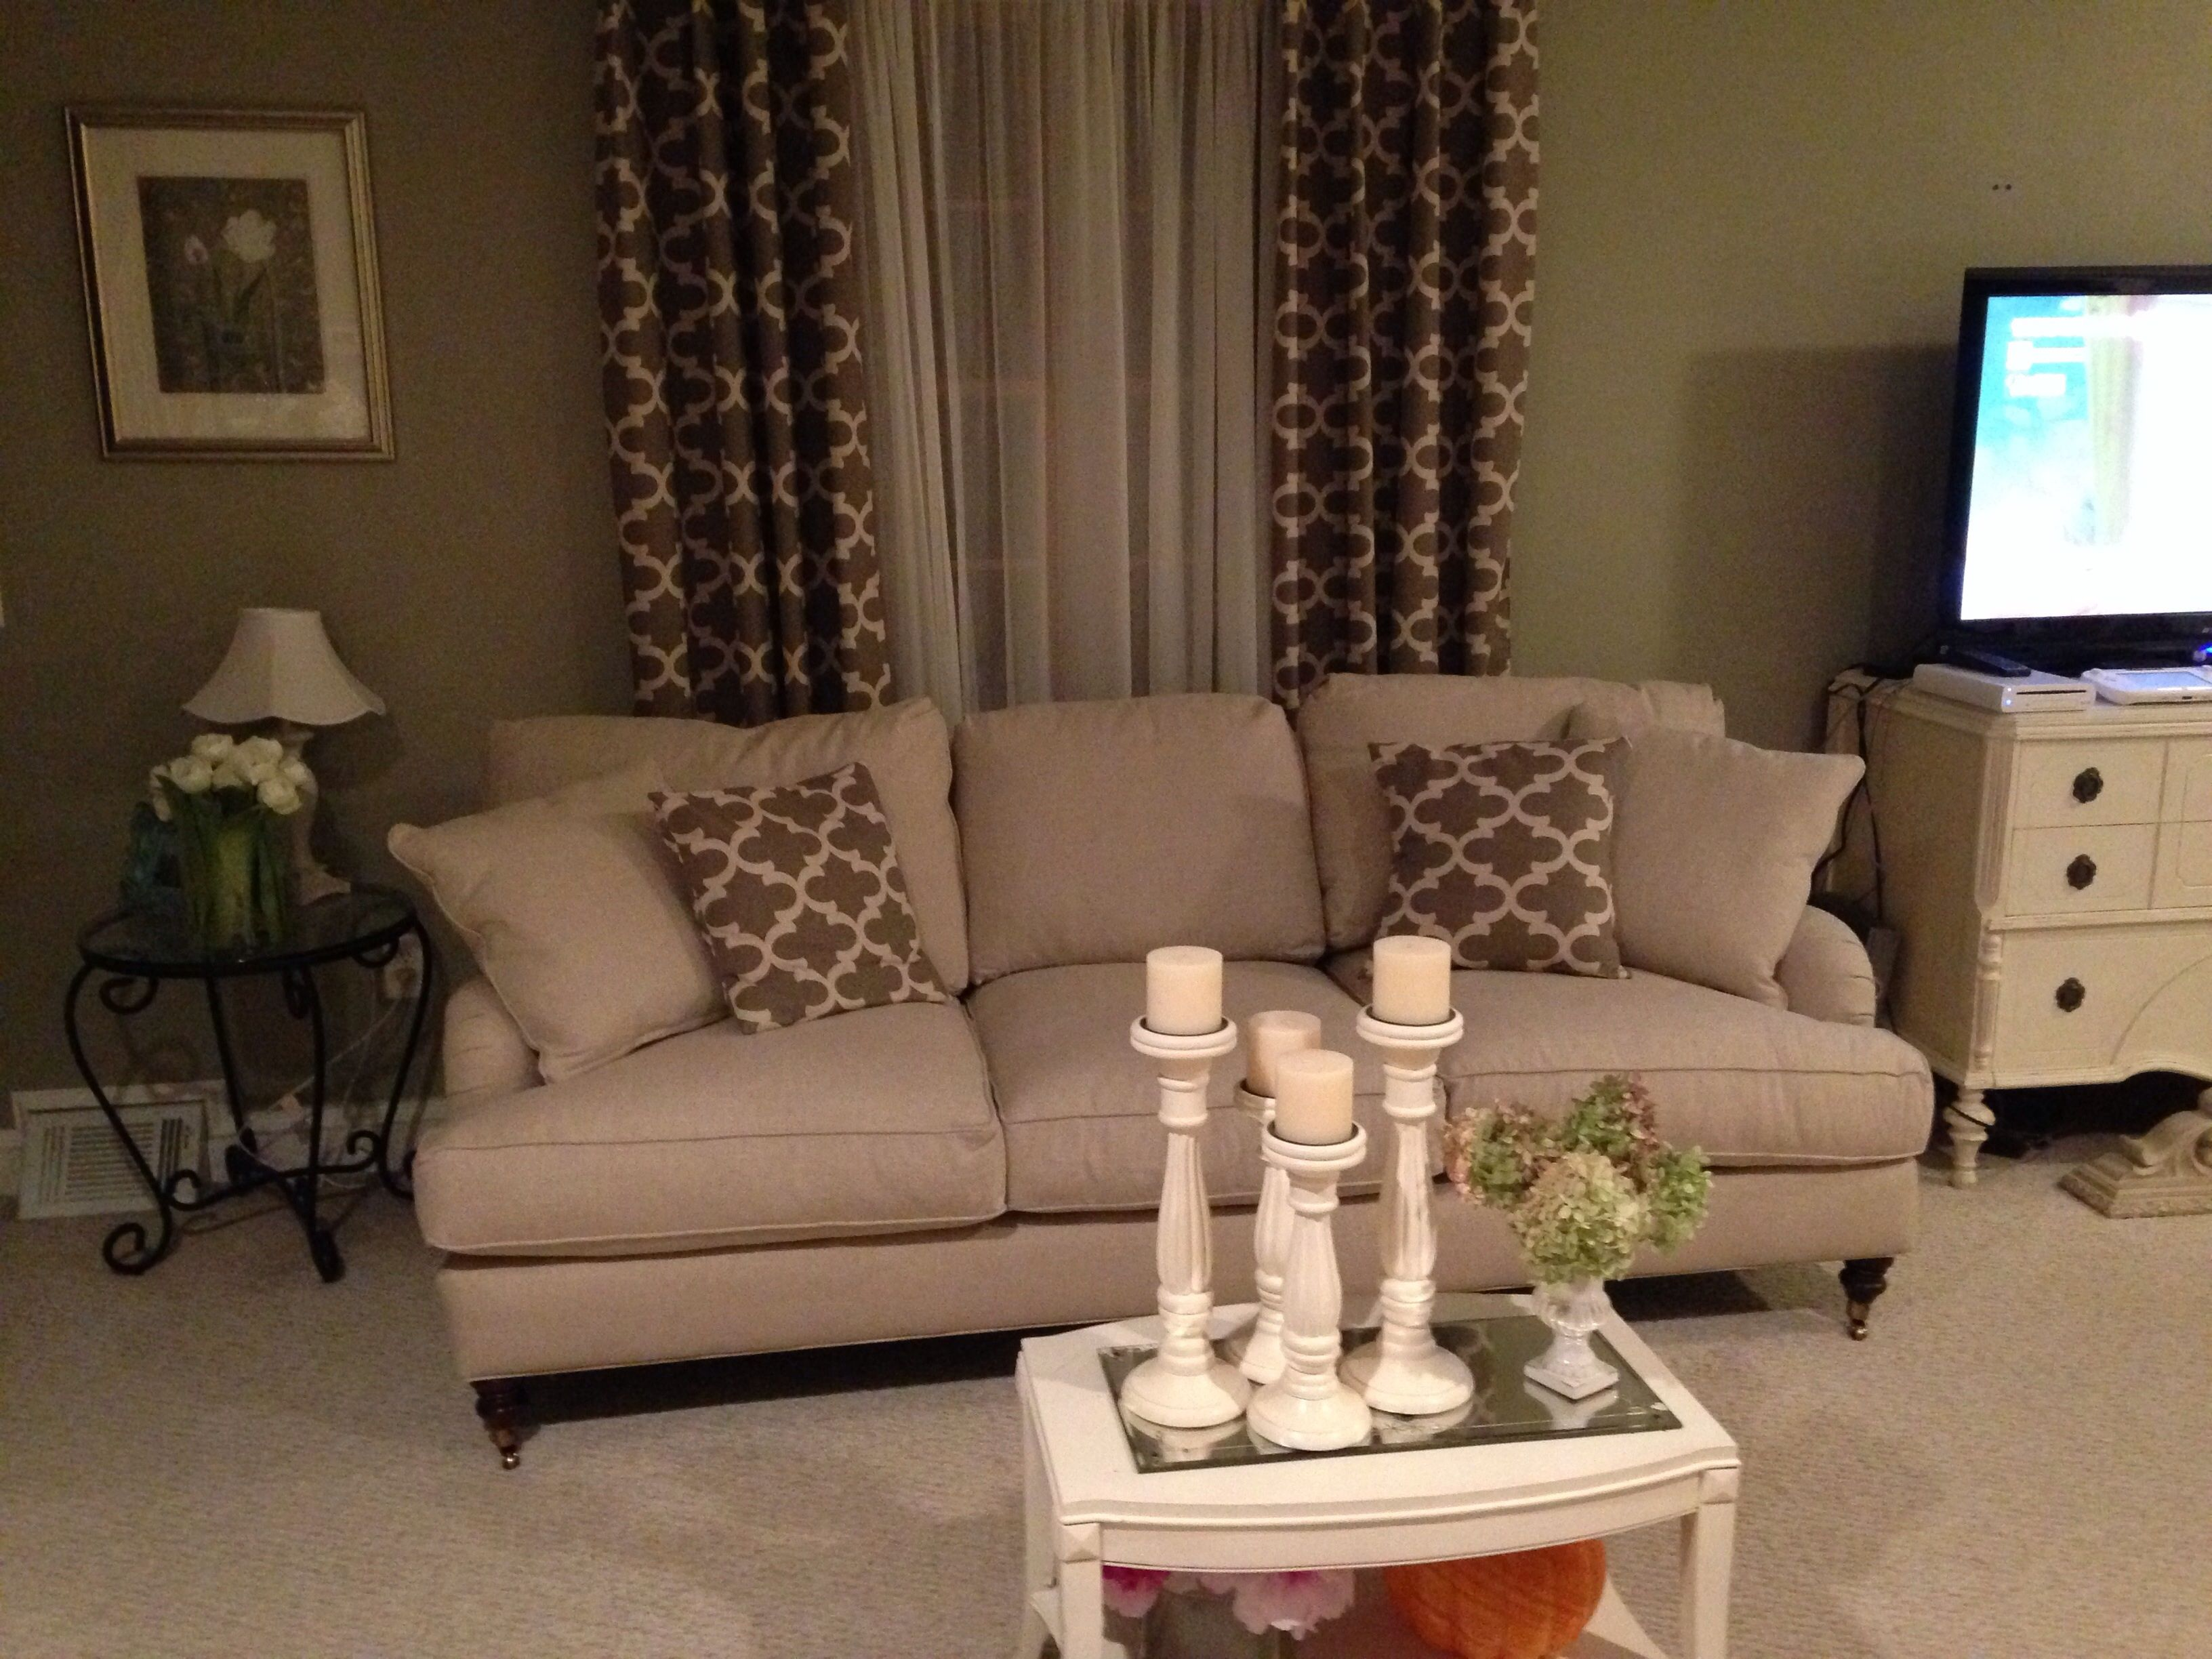 Love How The Curtains And Throw Pillows On Couch Match Totally Ties Room Together